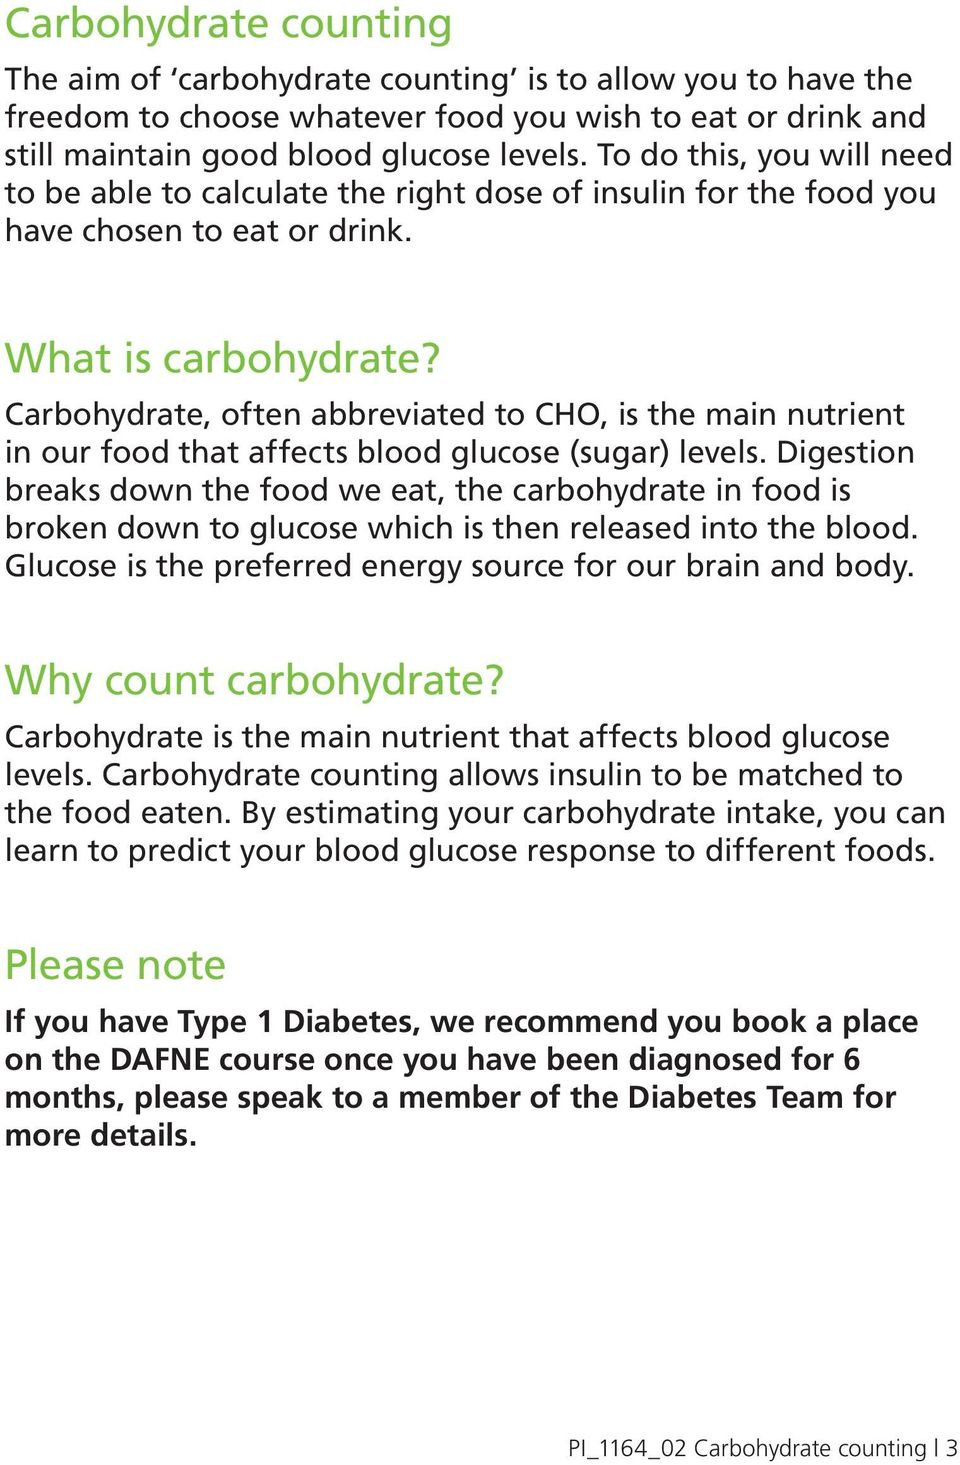 Carbohydrate, often abbreviated to CHO, is the main nutrient in our food that affects blood glucose (sugar) levels.